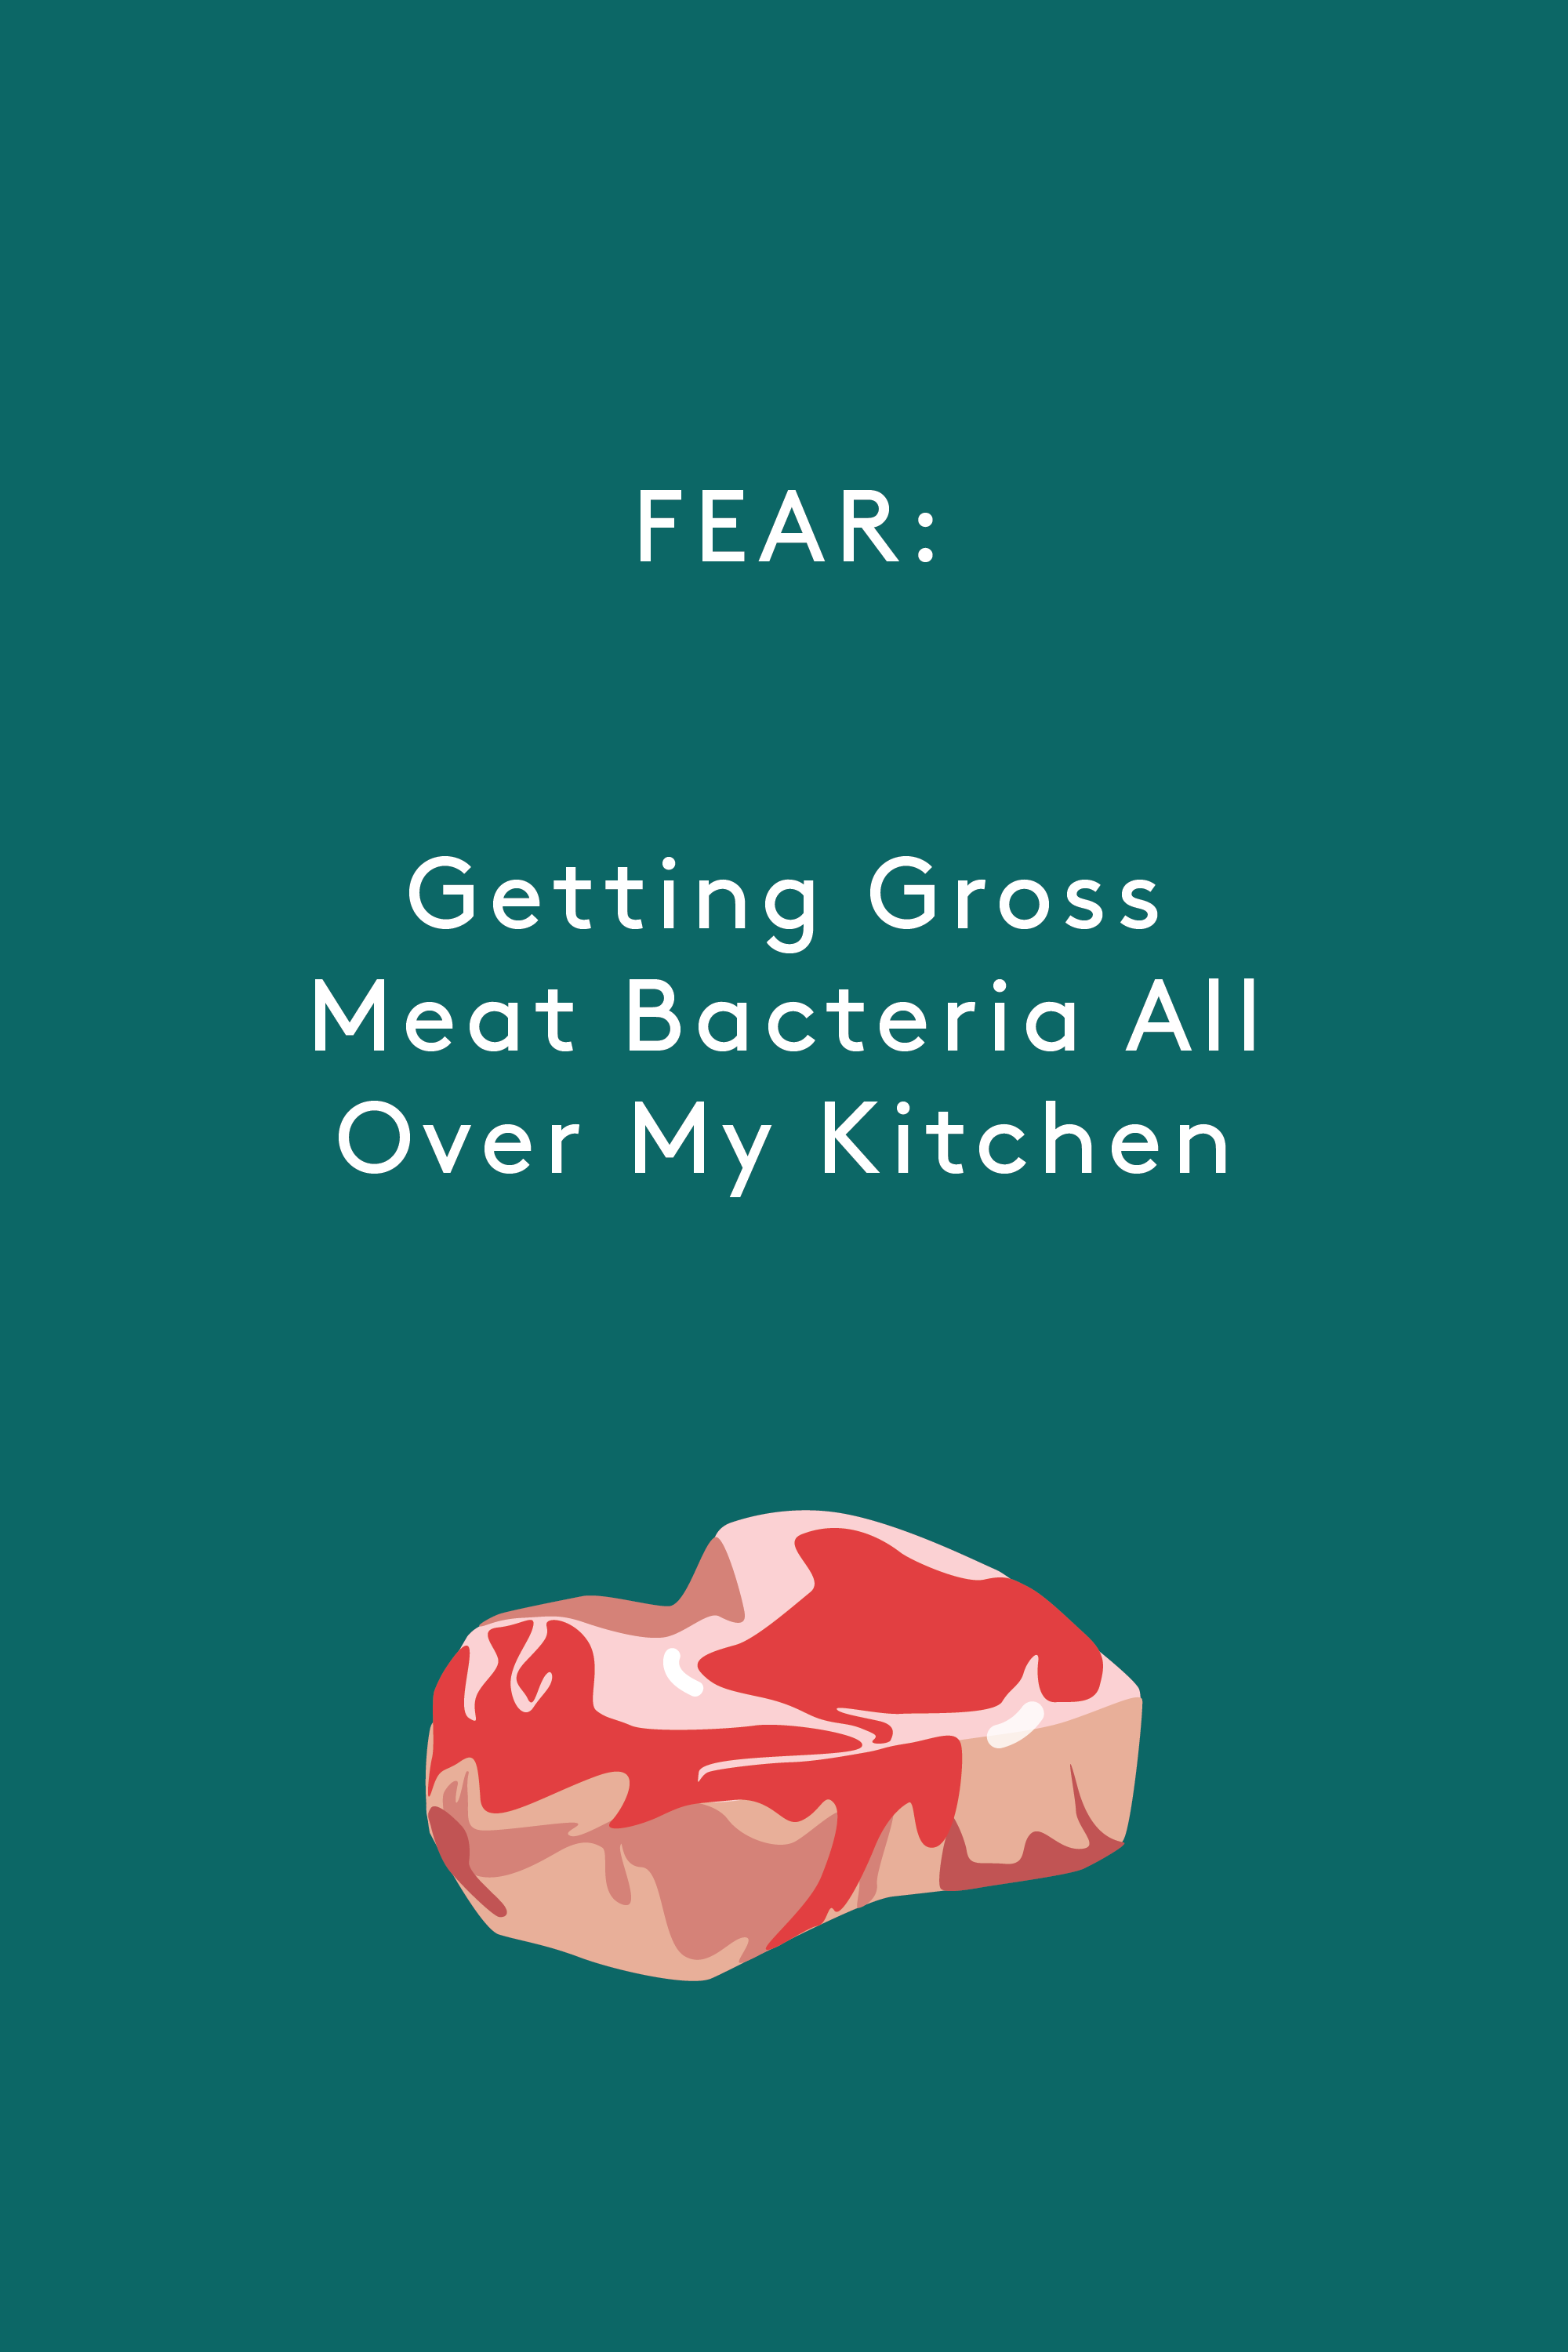 Fear Of Cooking Meat - How To Cook Meat Safely